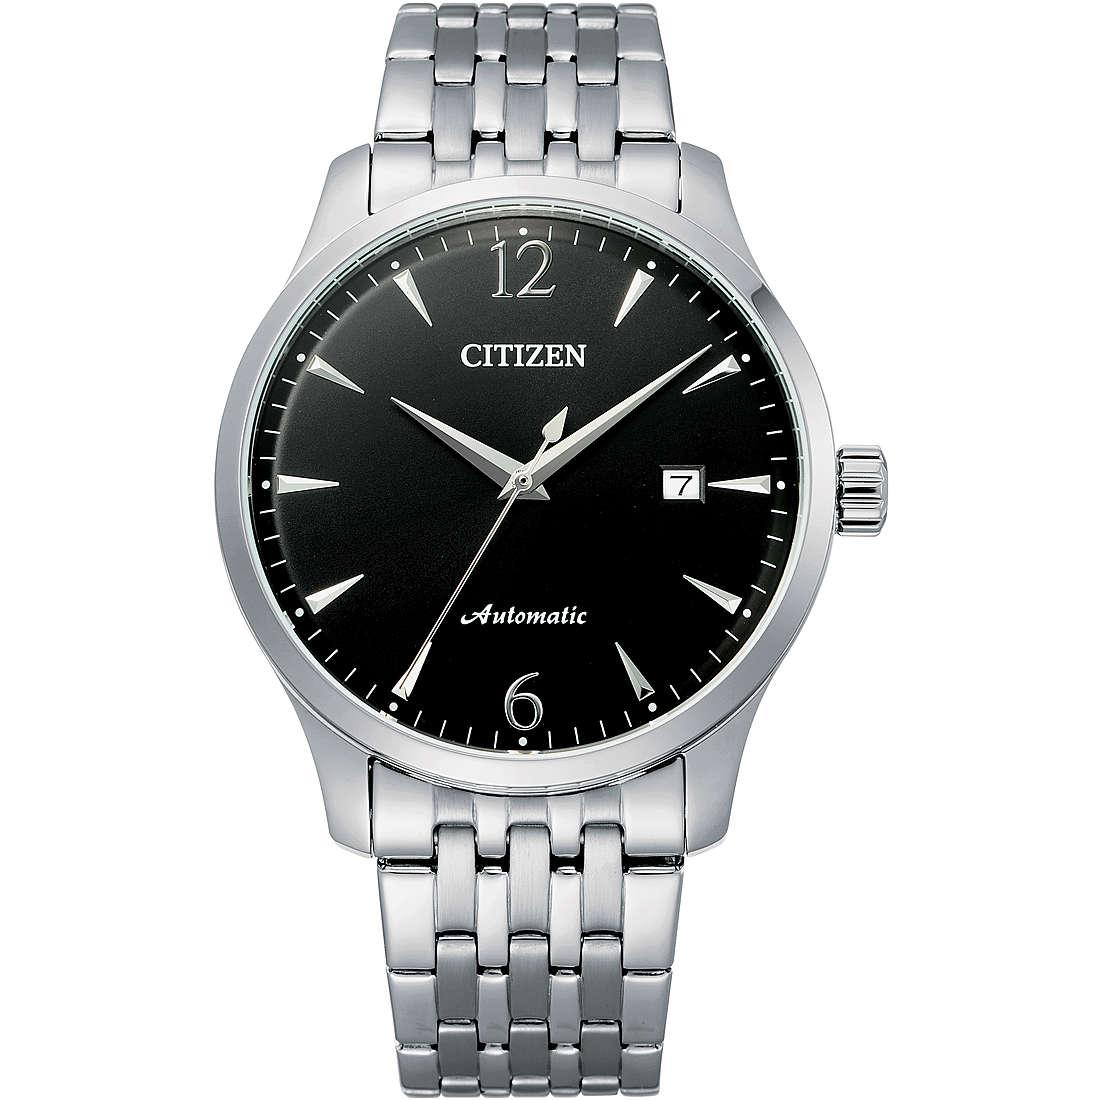 Orologio Automatico uomo Citizen NJ0110-85E Of Collection 2020